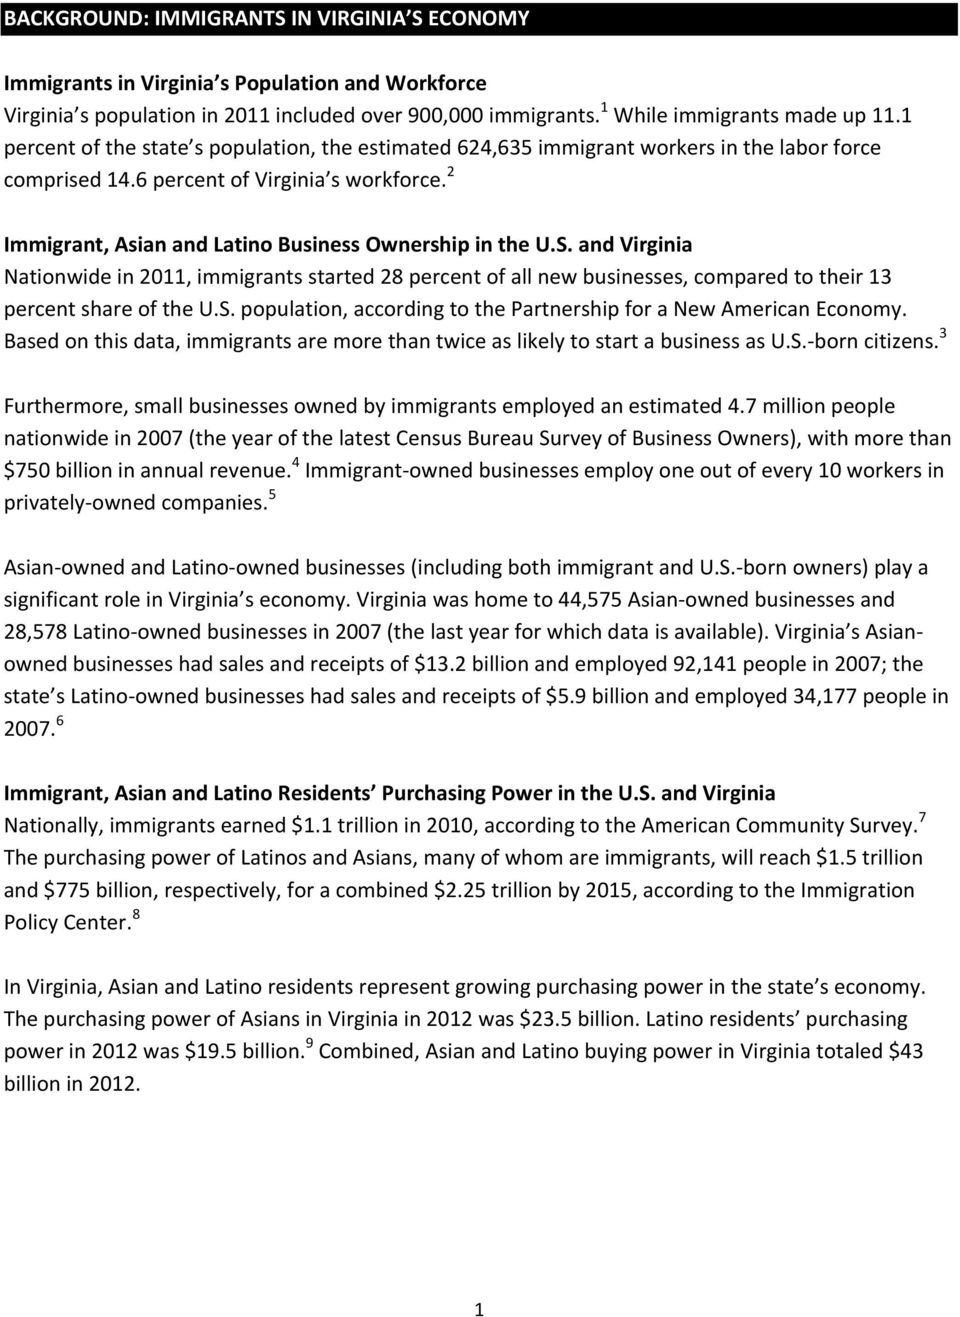 2 Immigrant, Asian and Latino Business Ownership in the U.S. and Virginia Nationwide in 2011, immigrants started 28 percent of all new businesses, compared to their 13 percent share of the U.S. population, according to the Partnership for a New American Economy.